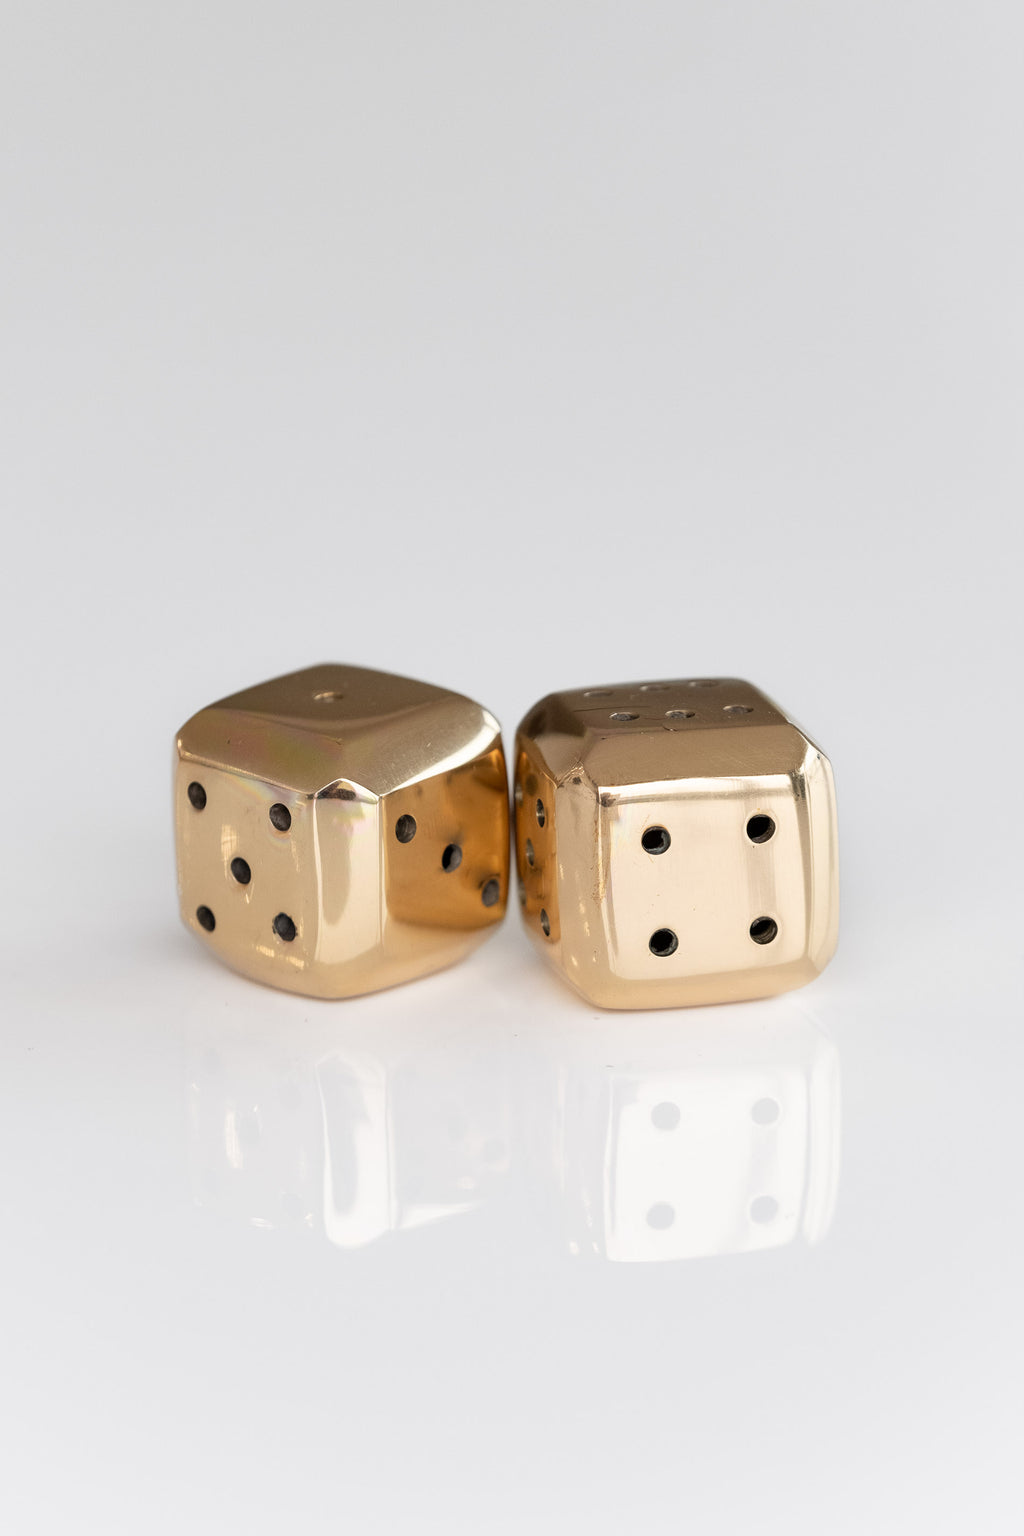 BRASS BEVELLED DICE